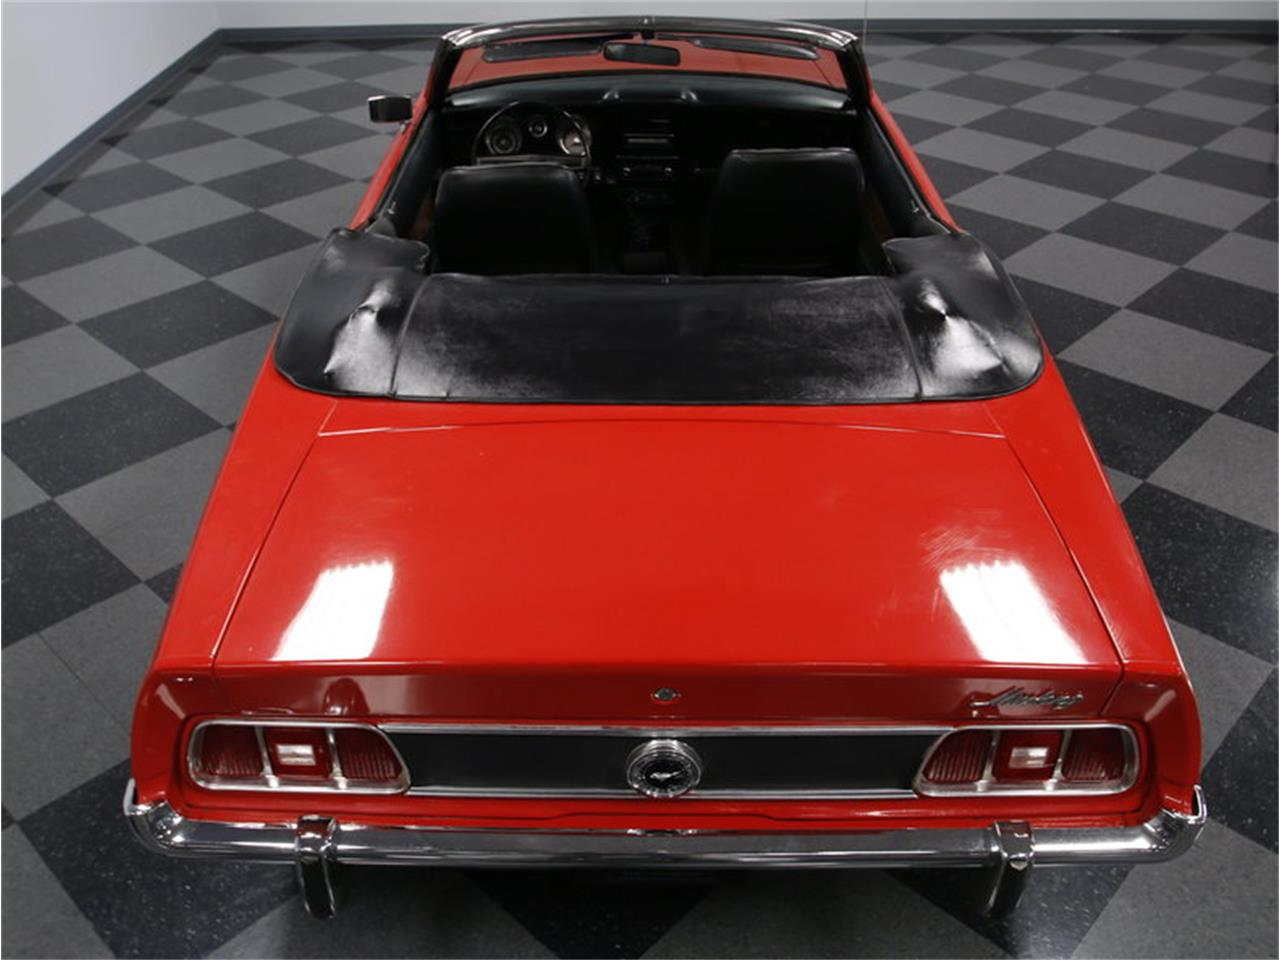 Large Picture of Classic '73 Mustang 351 Cobra Jet - $24,995.00 - KISW